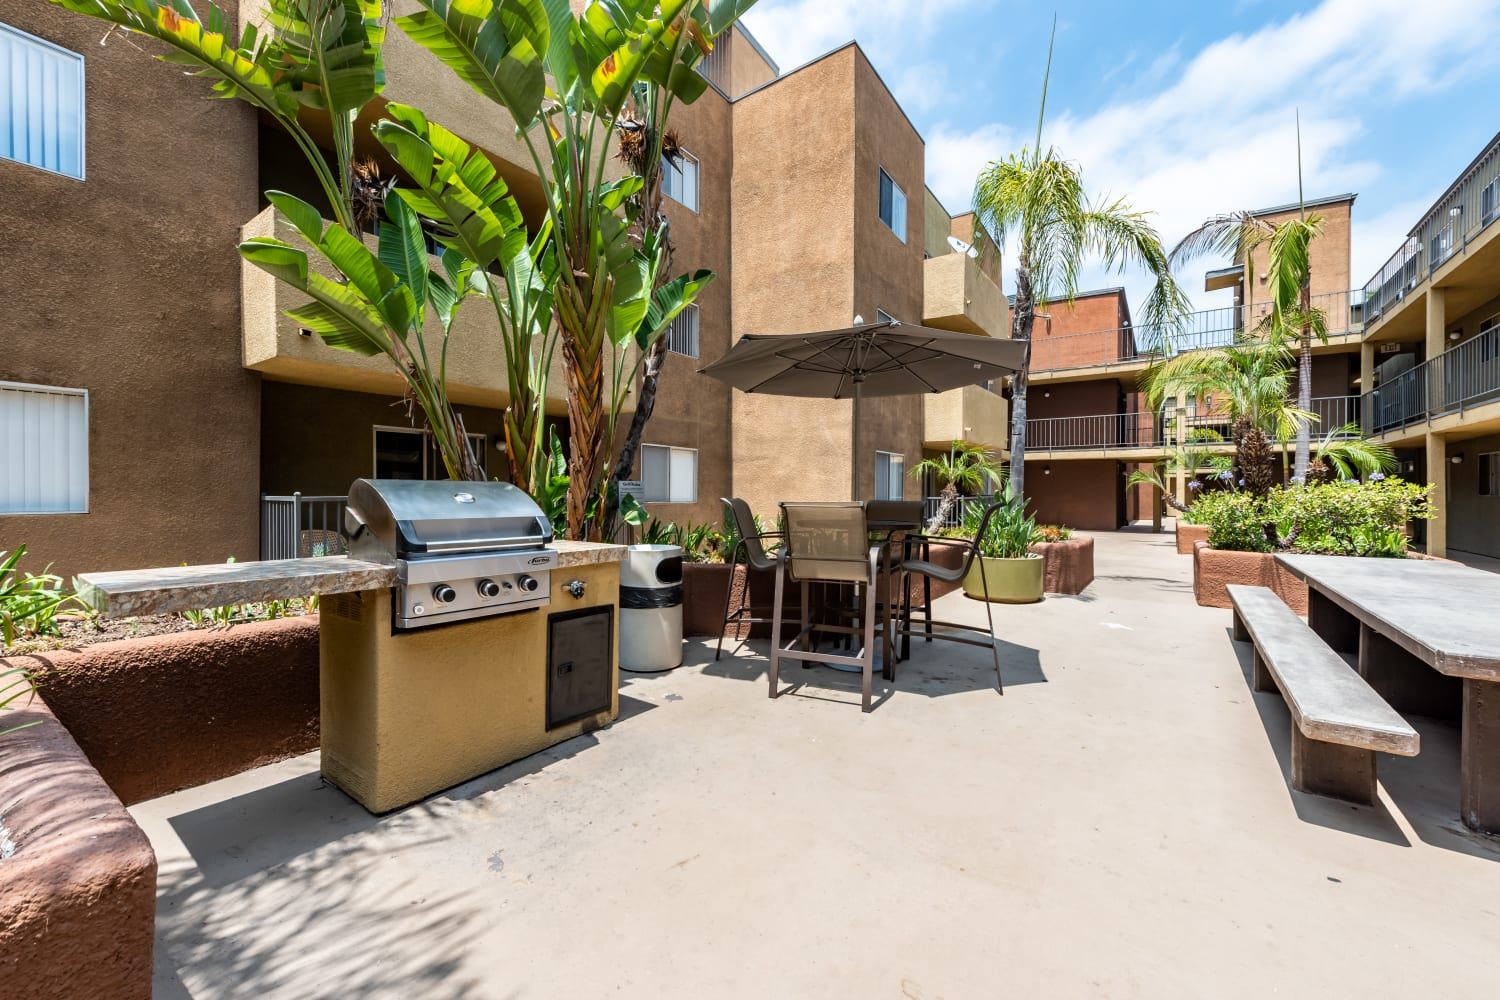 Outdoor community space and BBQ Area at Apartments in Glendale, California